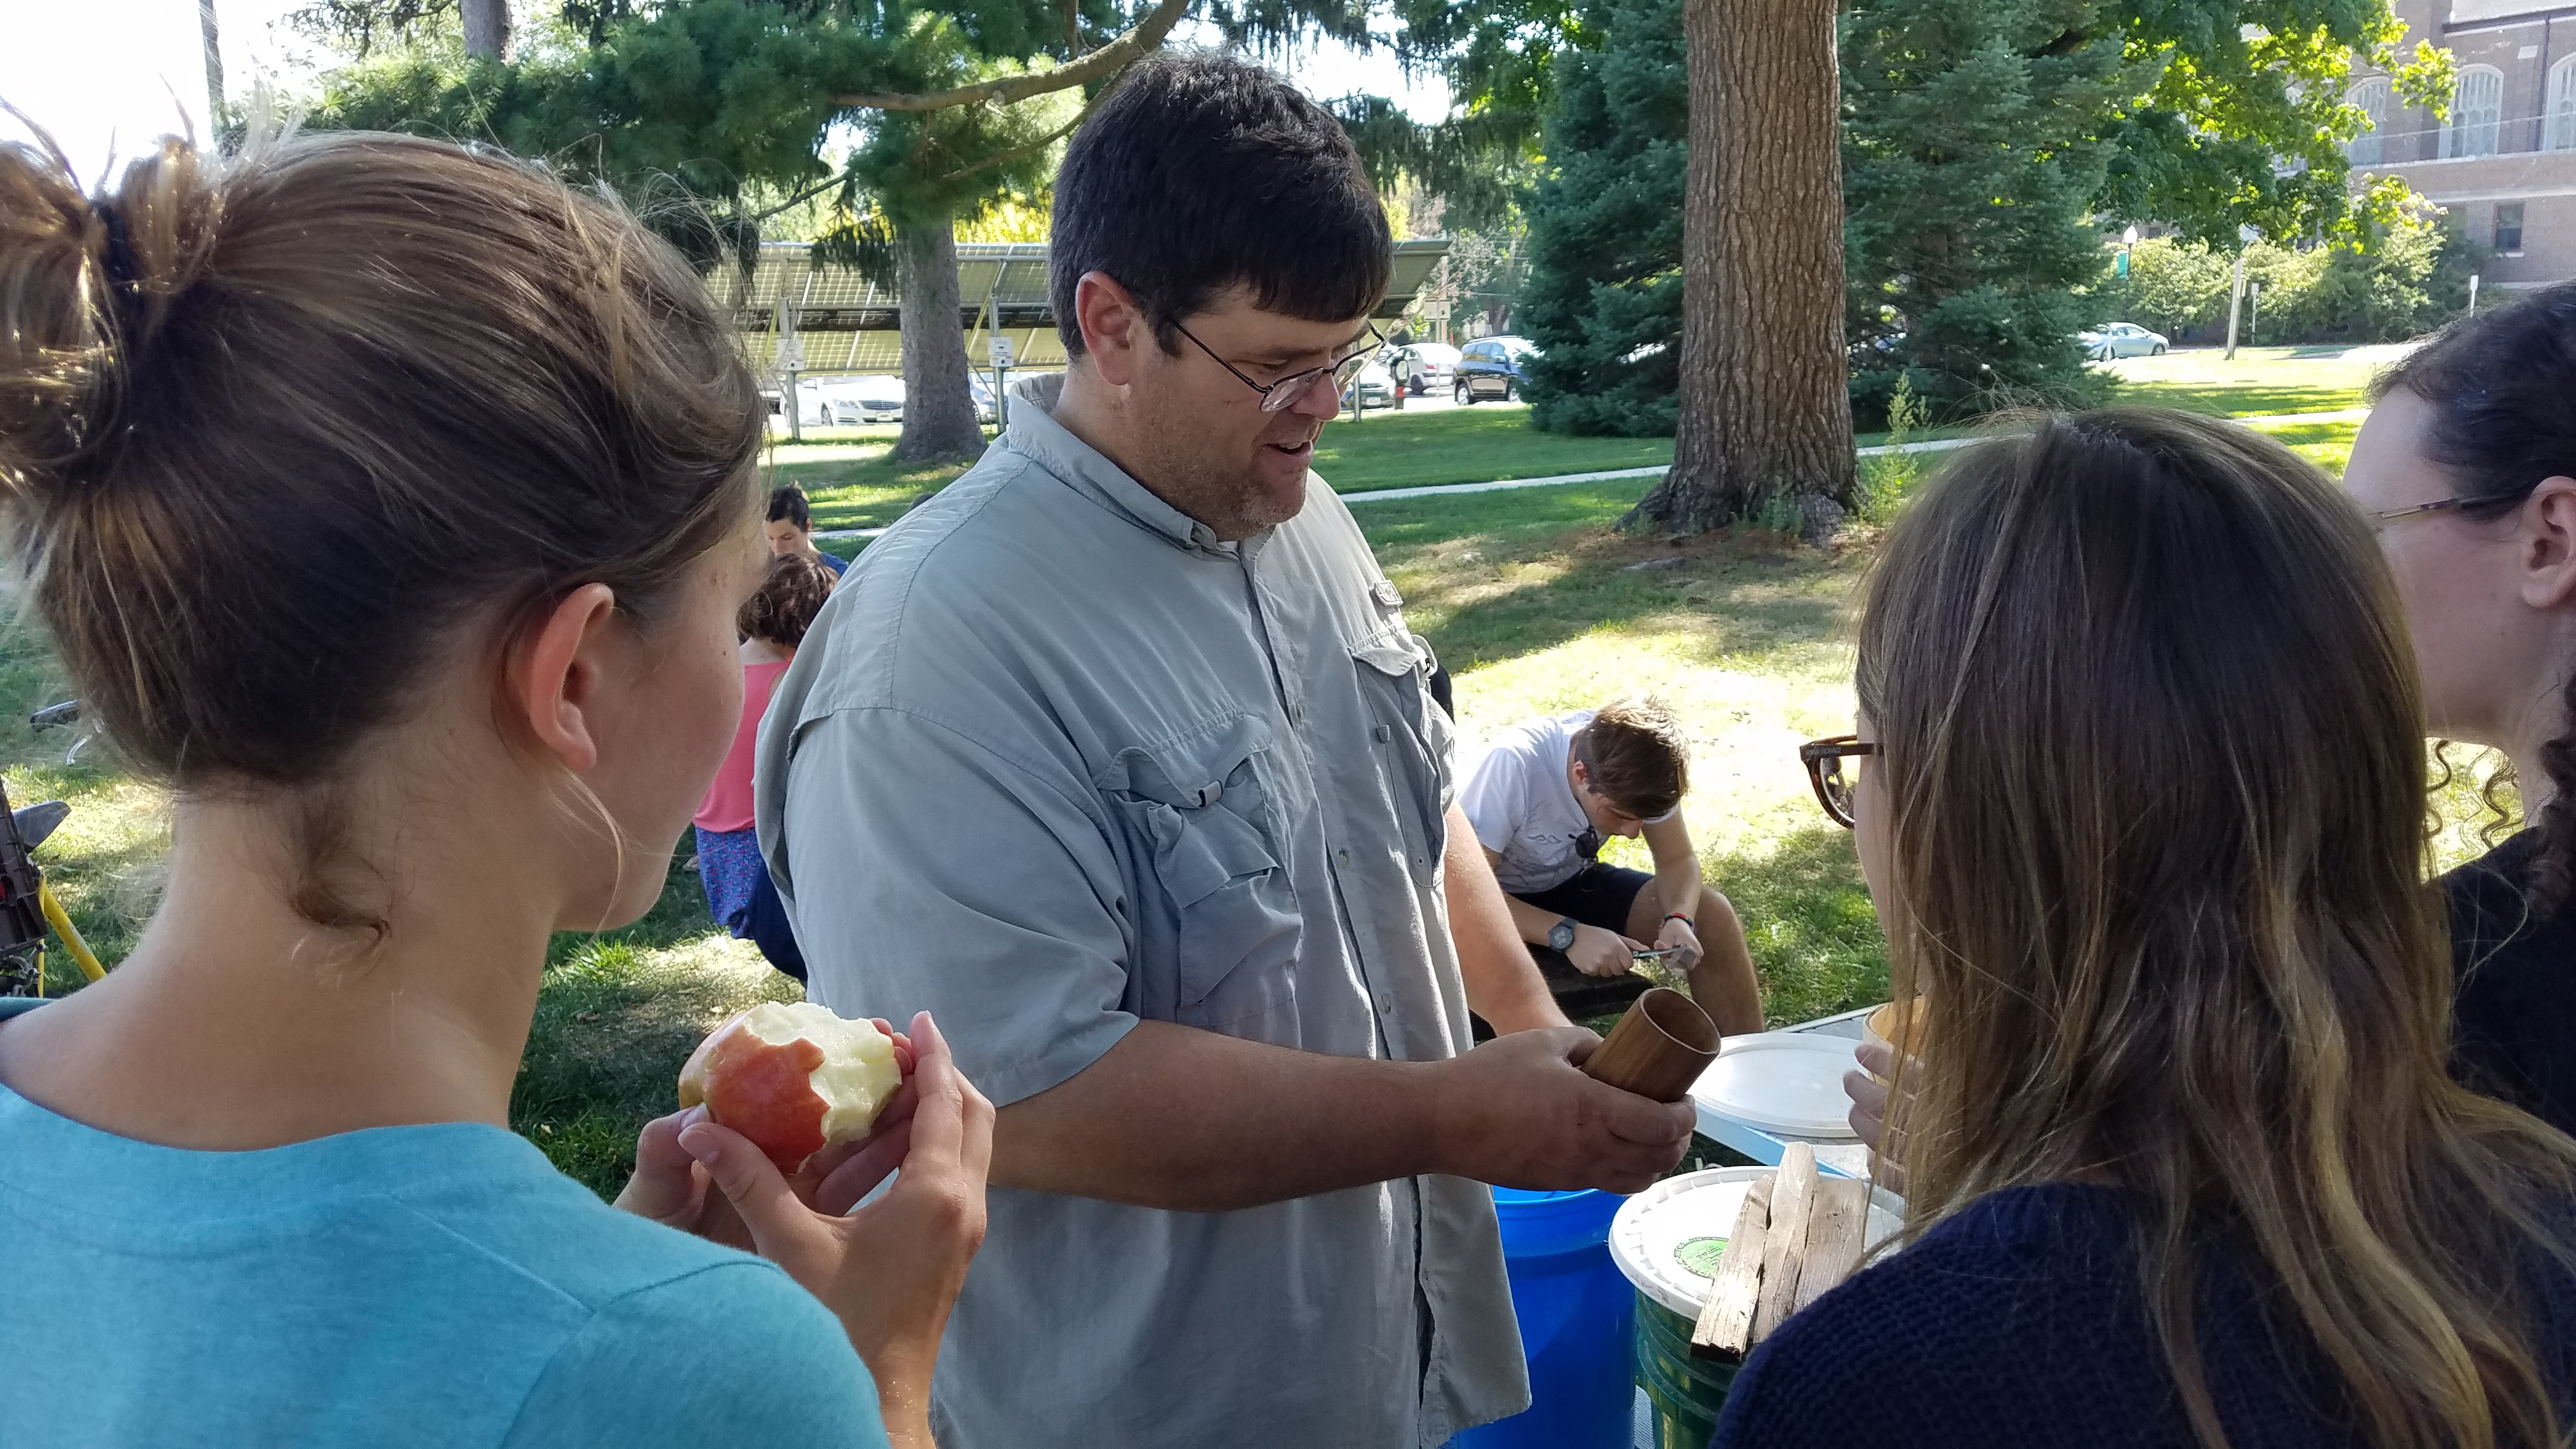 Chris Blair, co-founder of the College's carving group, instructing some new carvers at the College Garden.